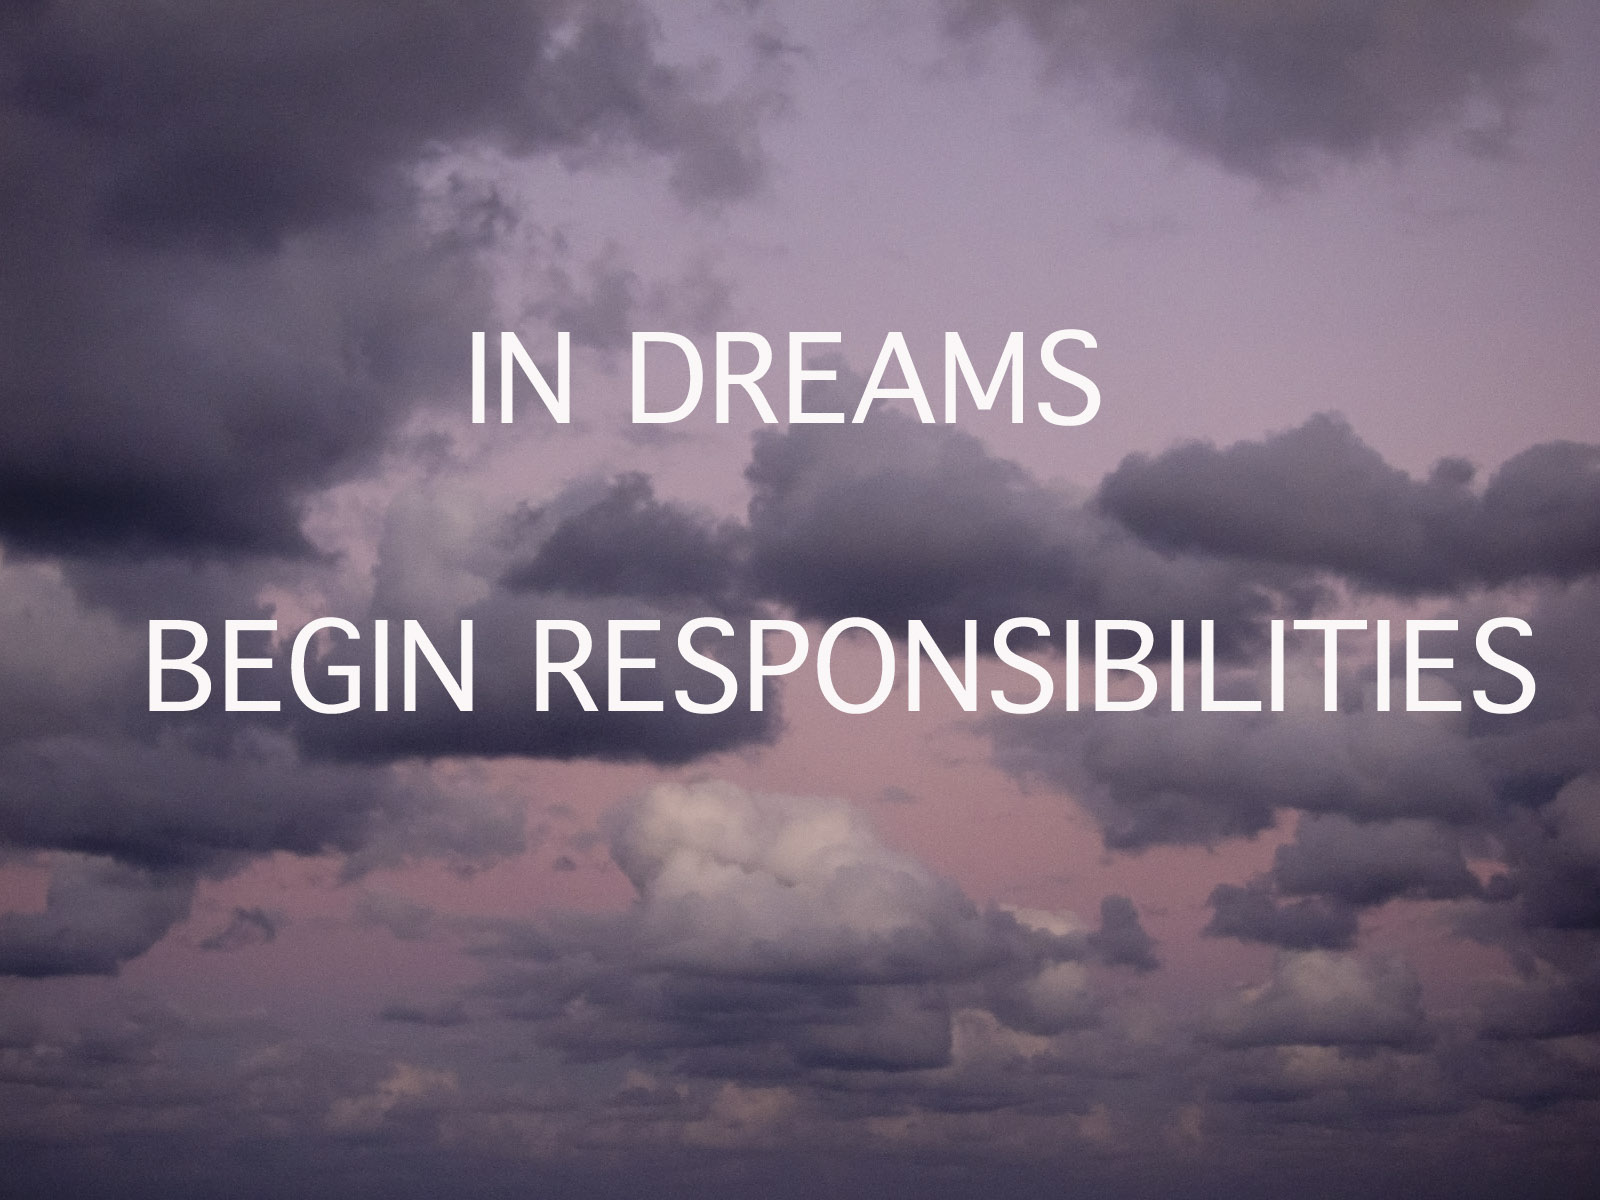 in dreams begin responsibilities analysis